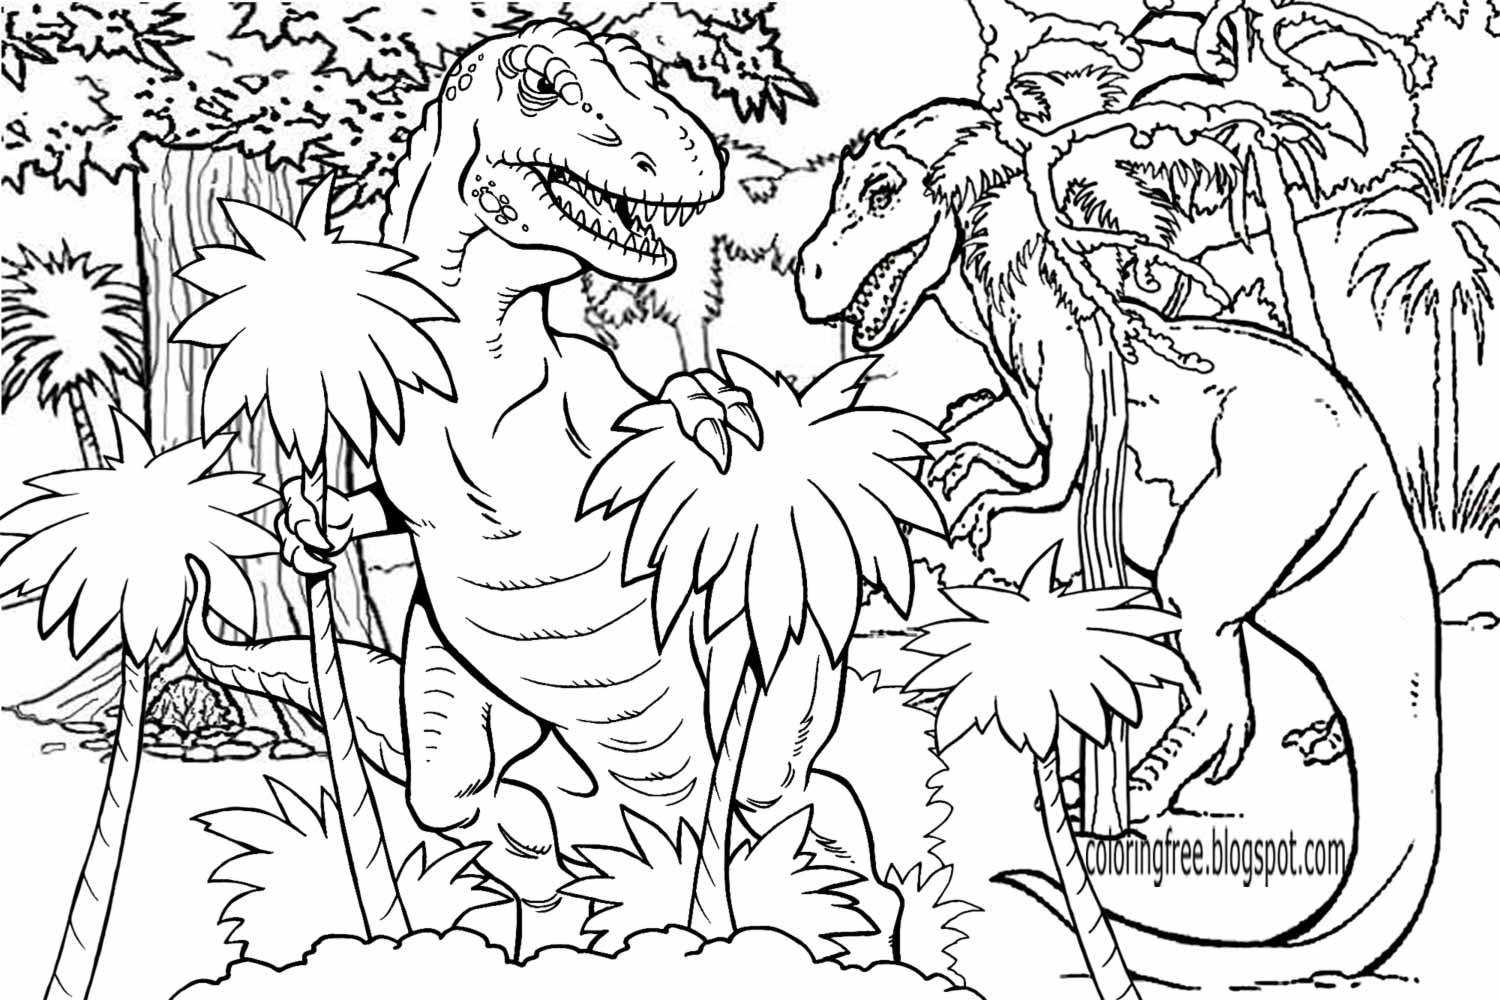 dinosaurs coloring pages printable dinosaur 6 coloringcolorcom dinosaurs coloring pages printable